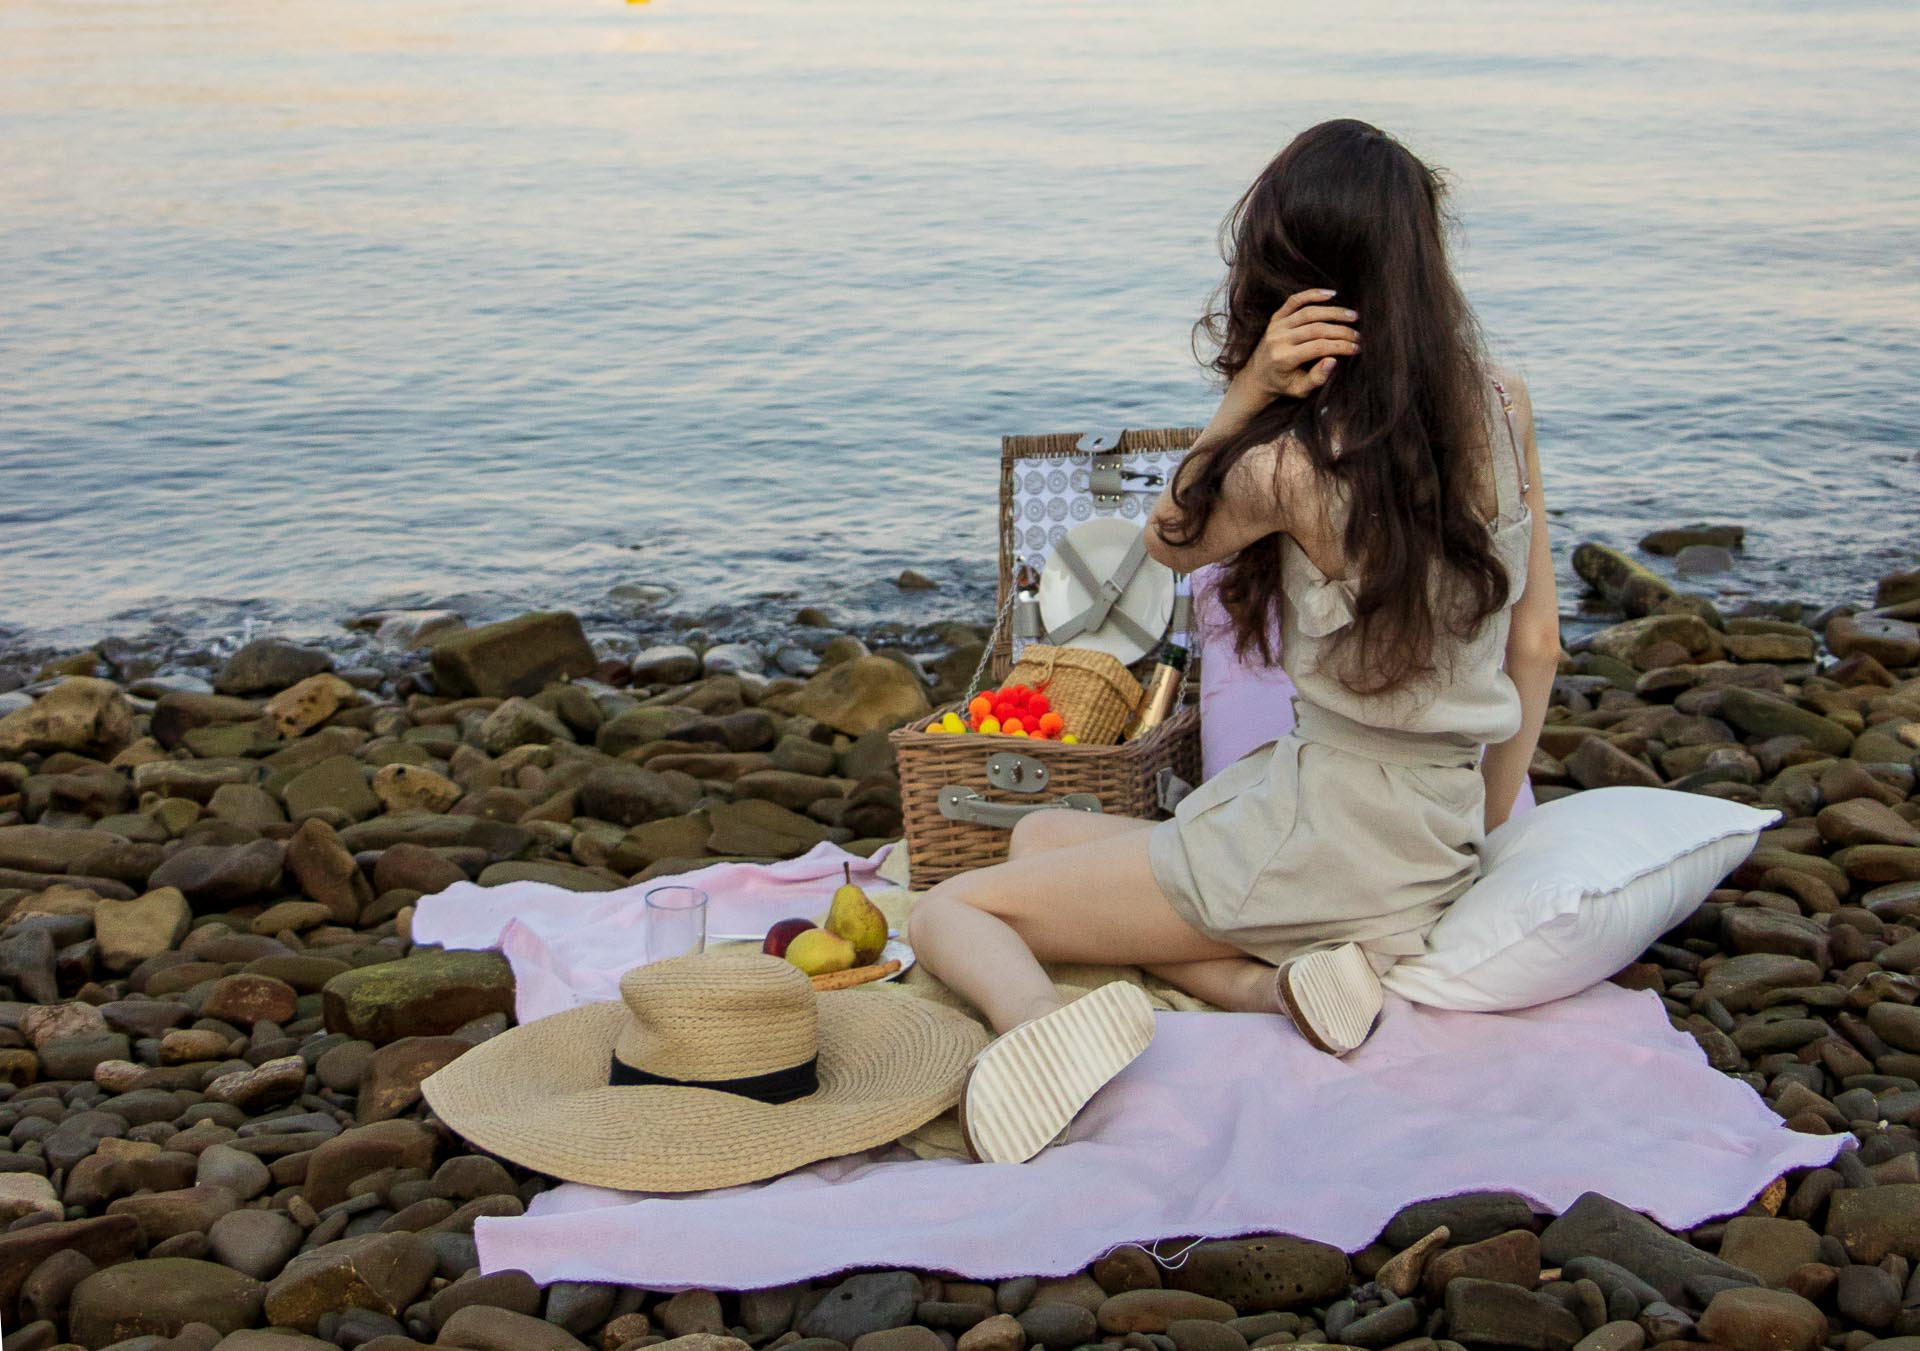 Slovenian Fashion Blogger Veronika Lipar of Brunette from Wall dressed in beige linen crop top, paper bag linen shorts, luxe pool slides, large straw hat, Nannacay basket bag while having a beach picnic